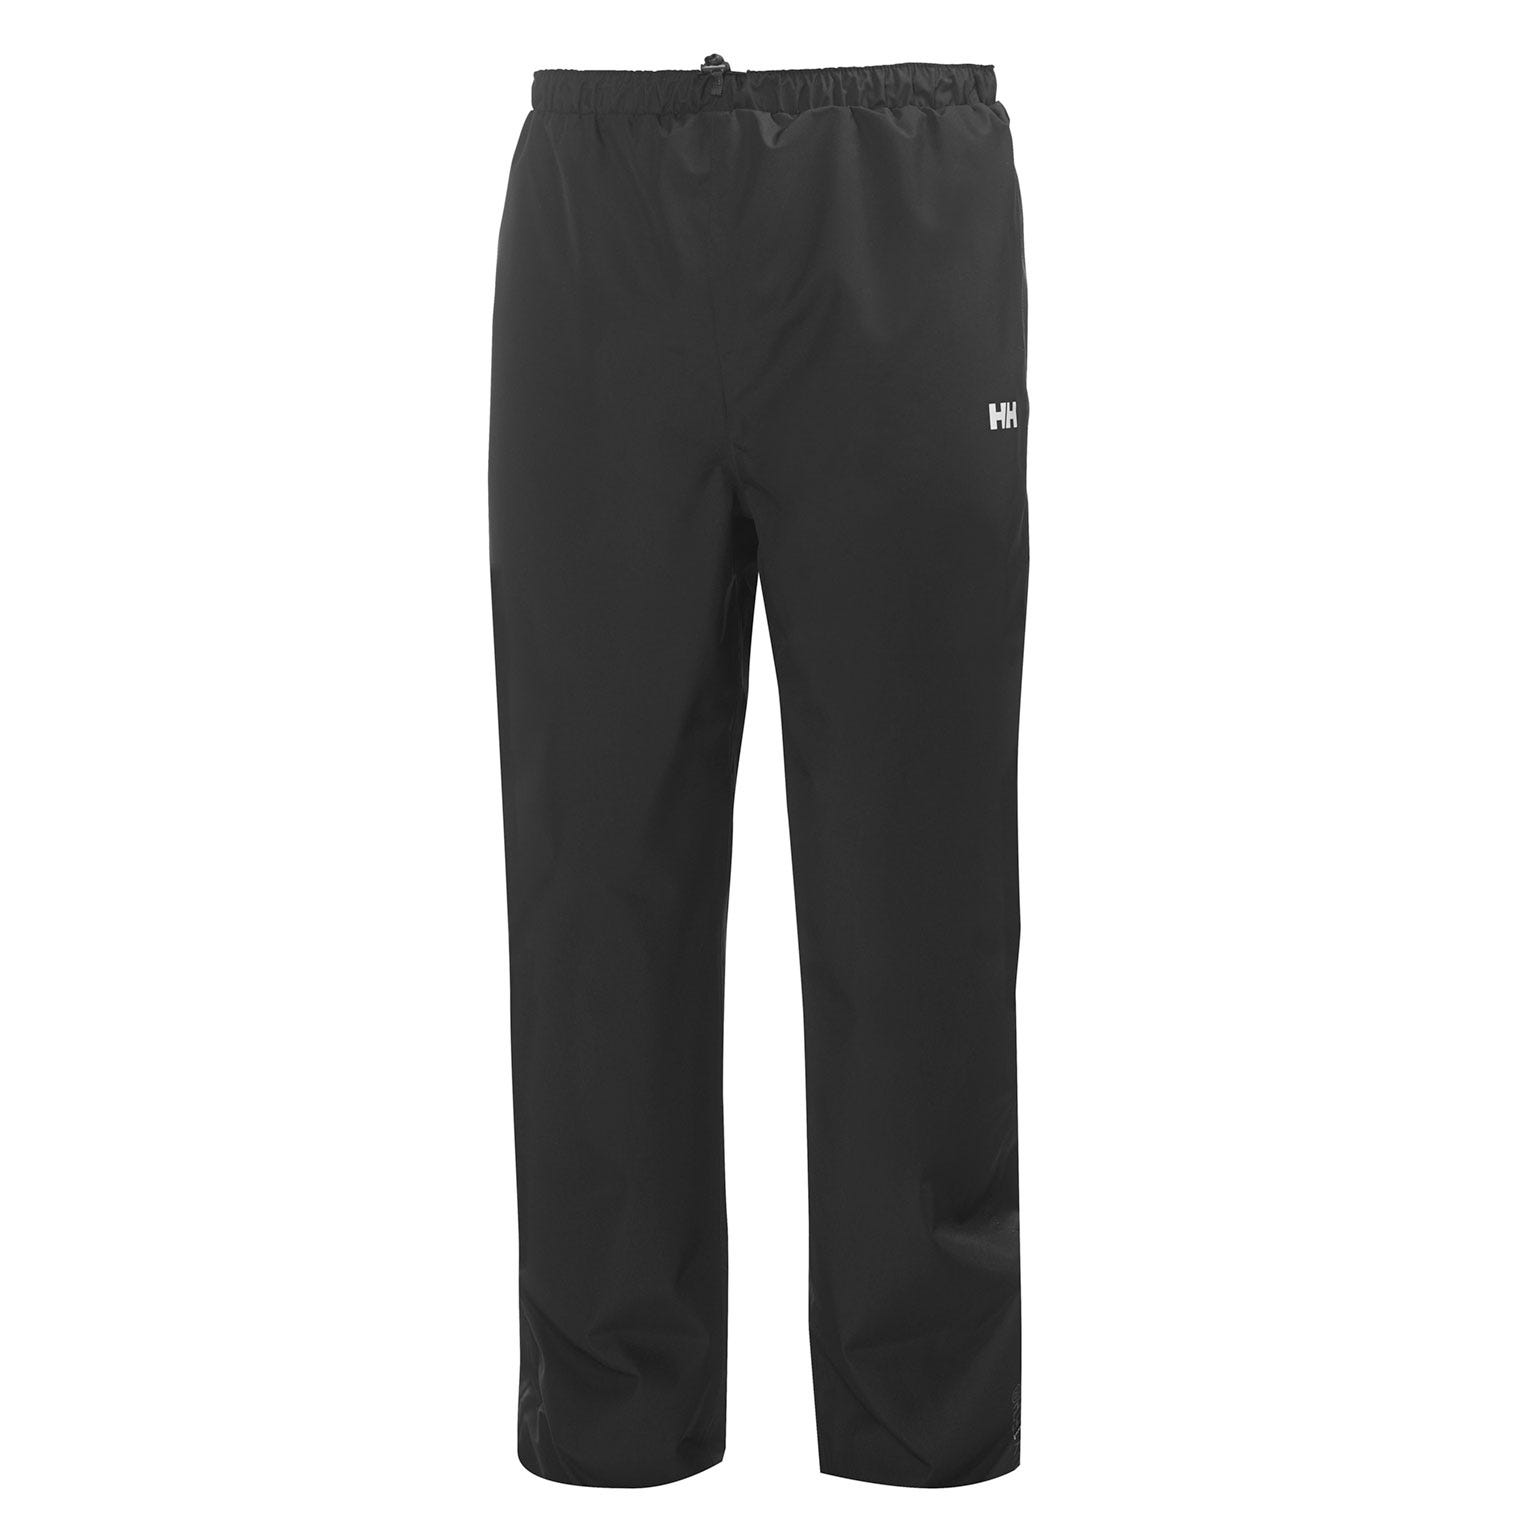 Odin Skarstind Pant | Hard Shell Fjellbukse For Menn | HH NO